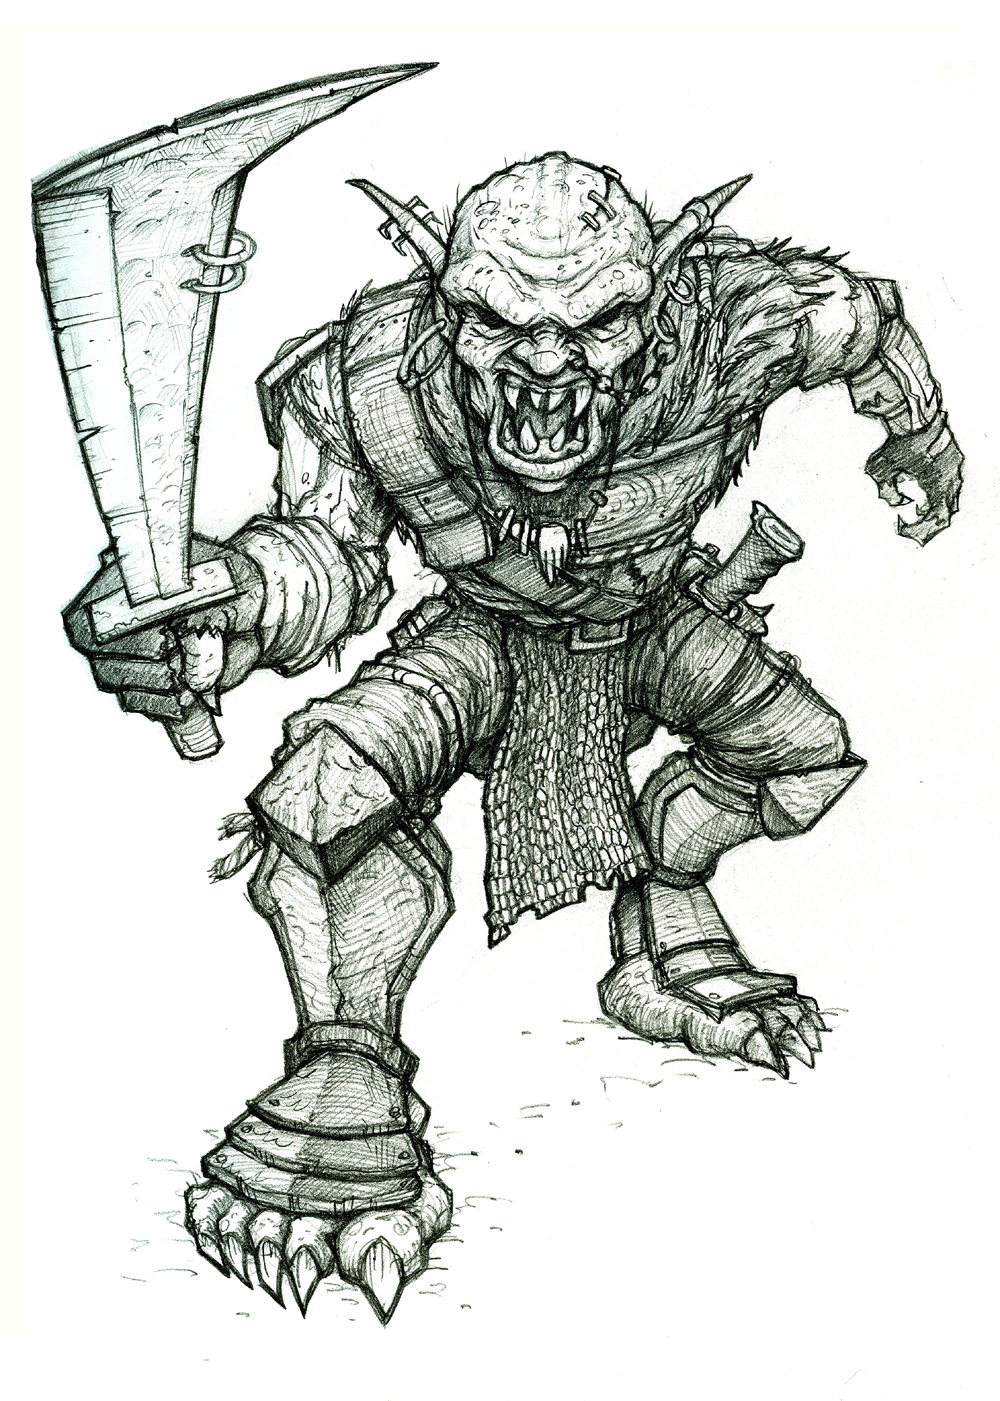 Drawn orc sketch 2 2 2 on Orc